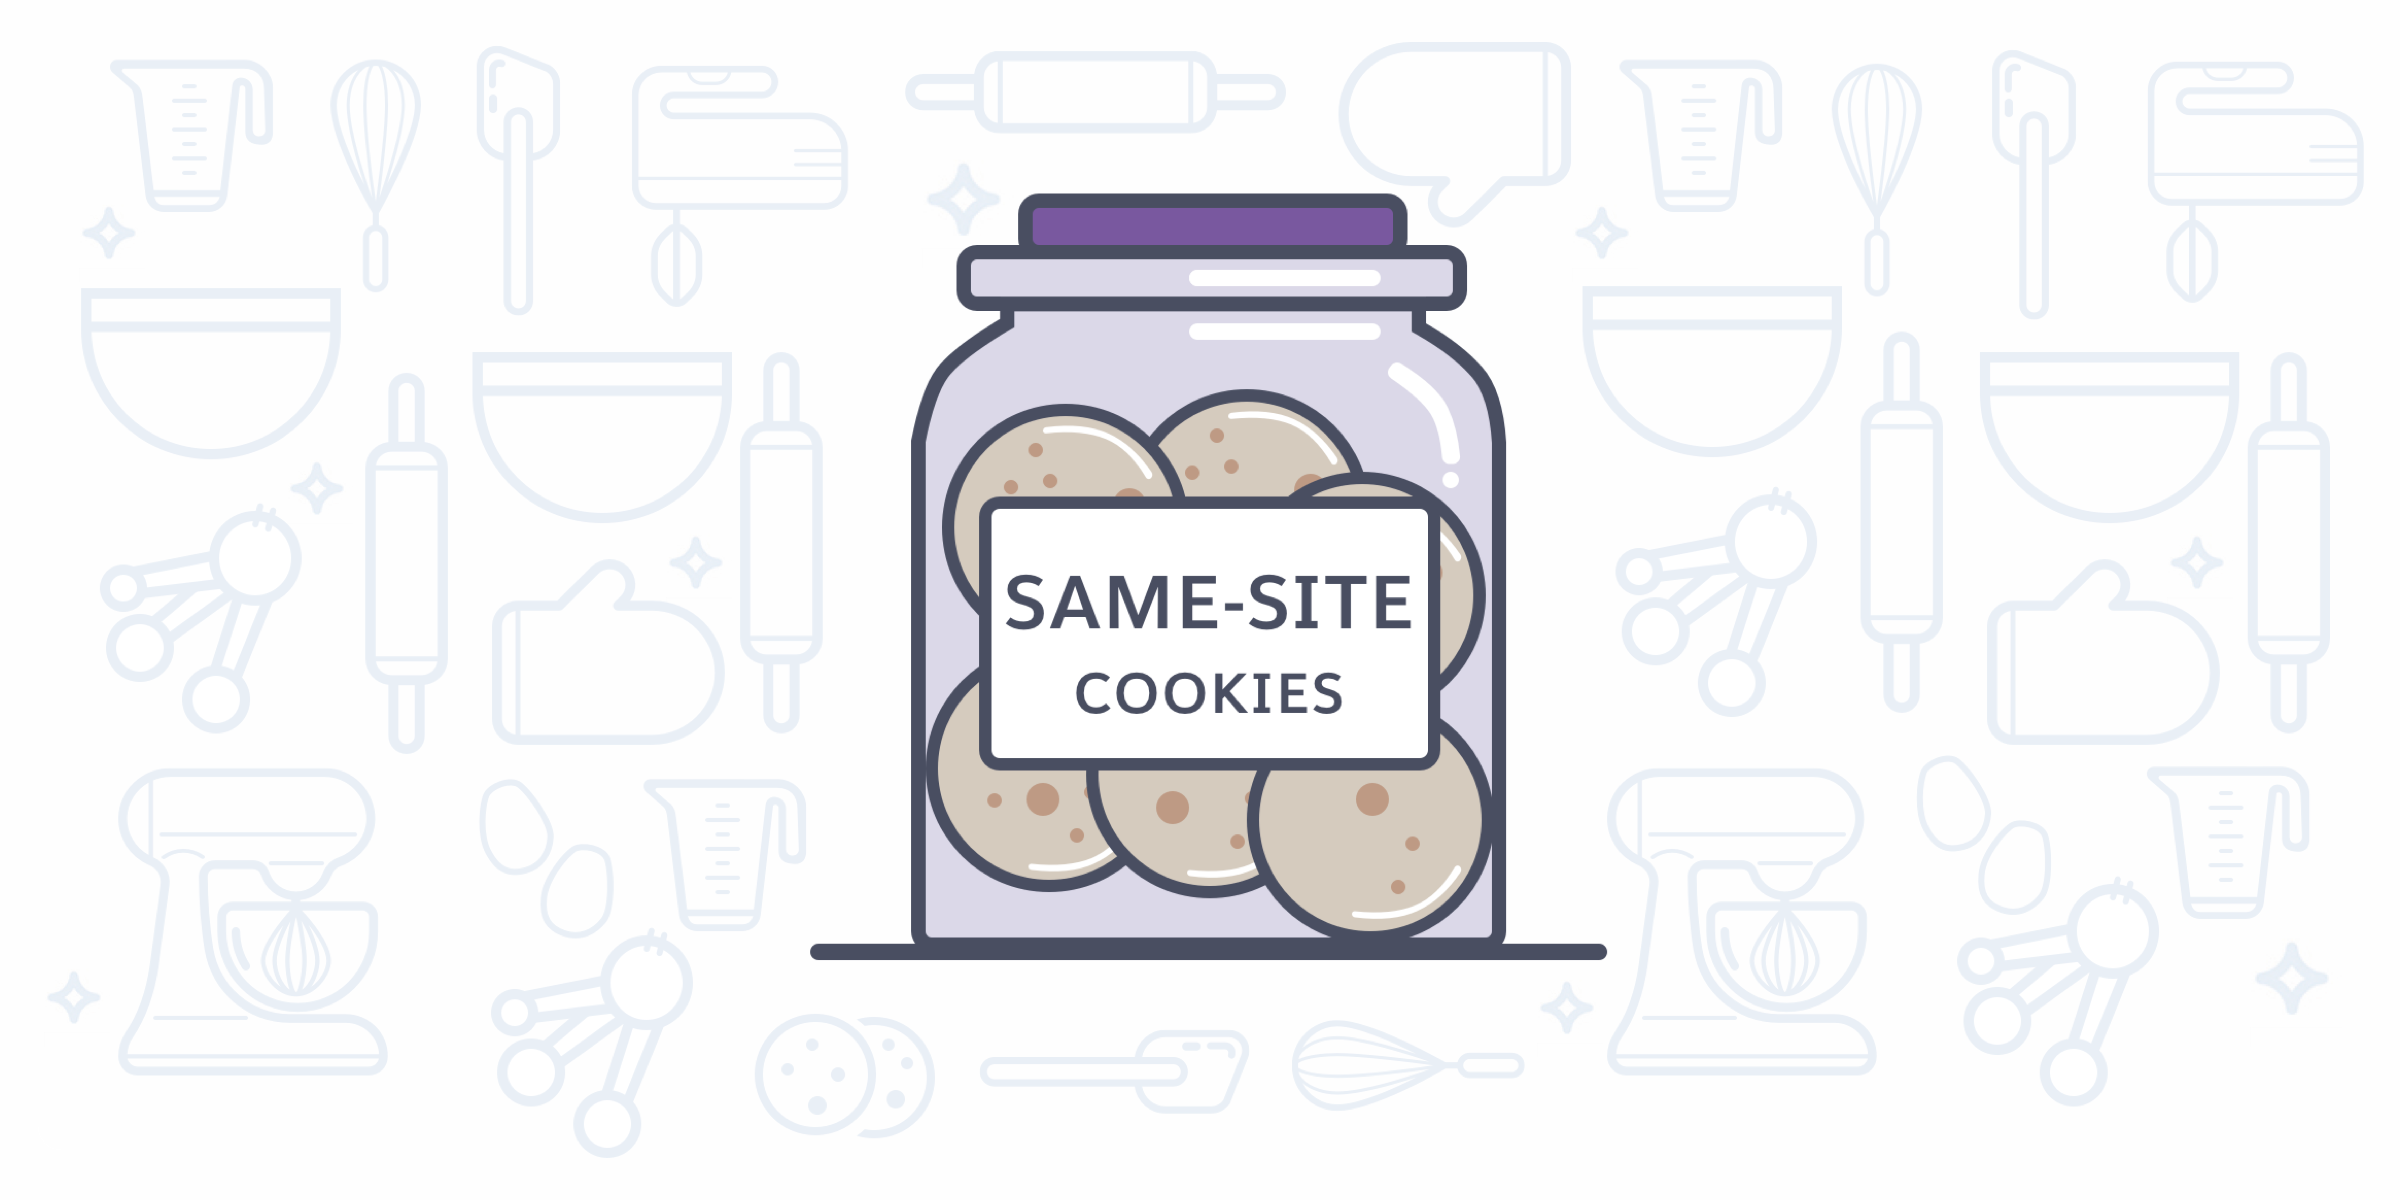 Blog post cover image showing a jar with cookies in it